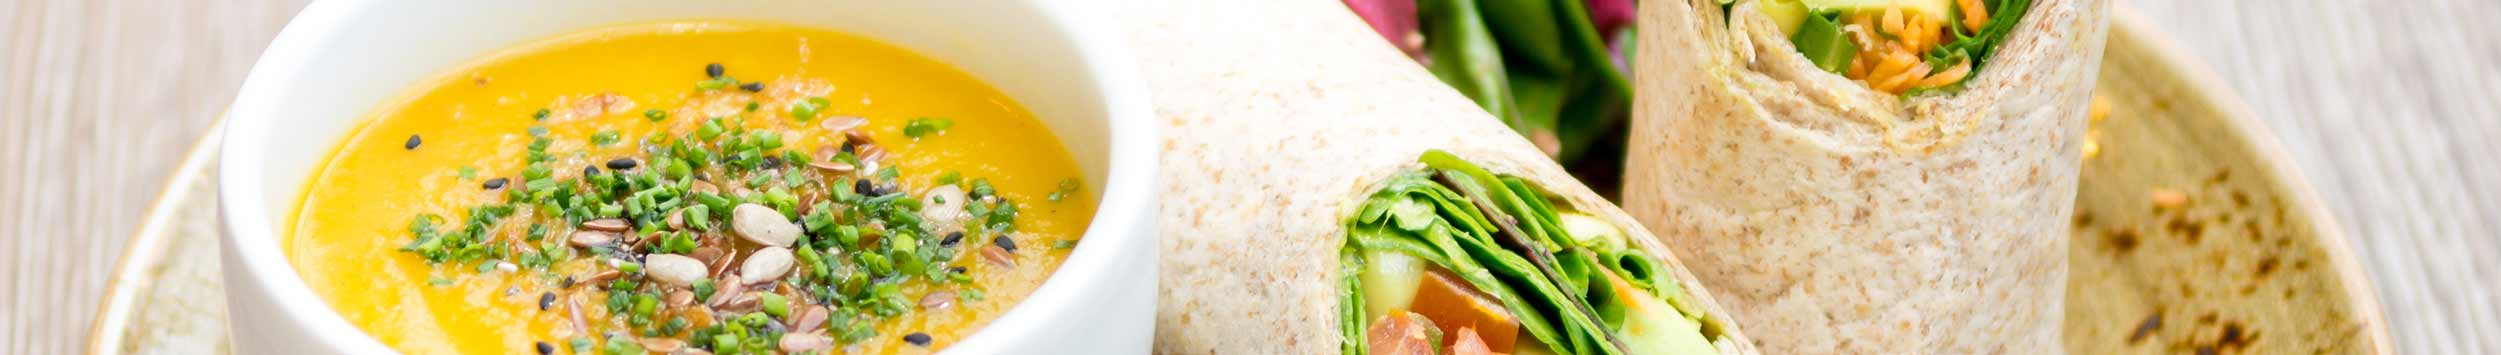 aveato Sandwiches Wraps Meeting Lunchbox Catering